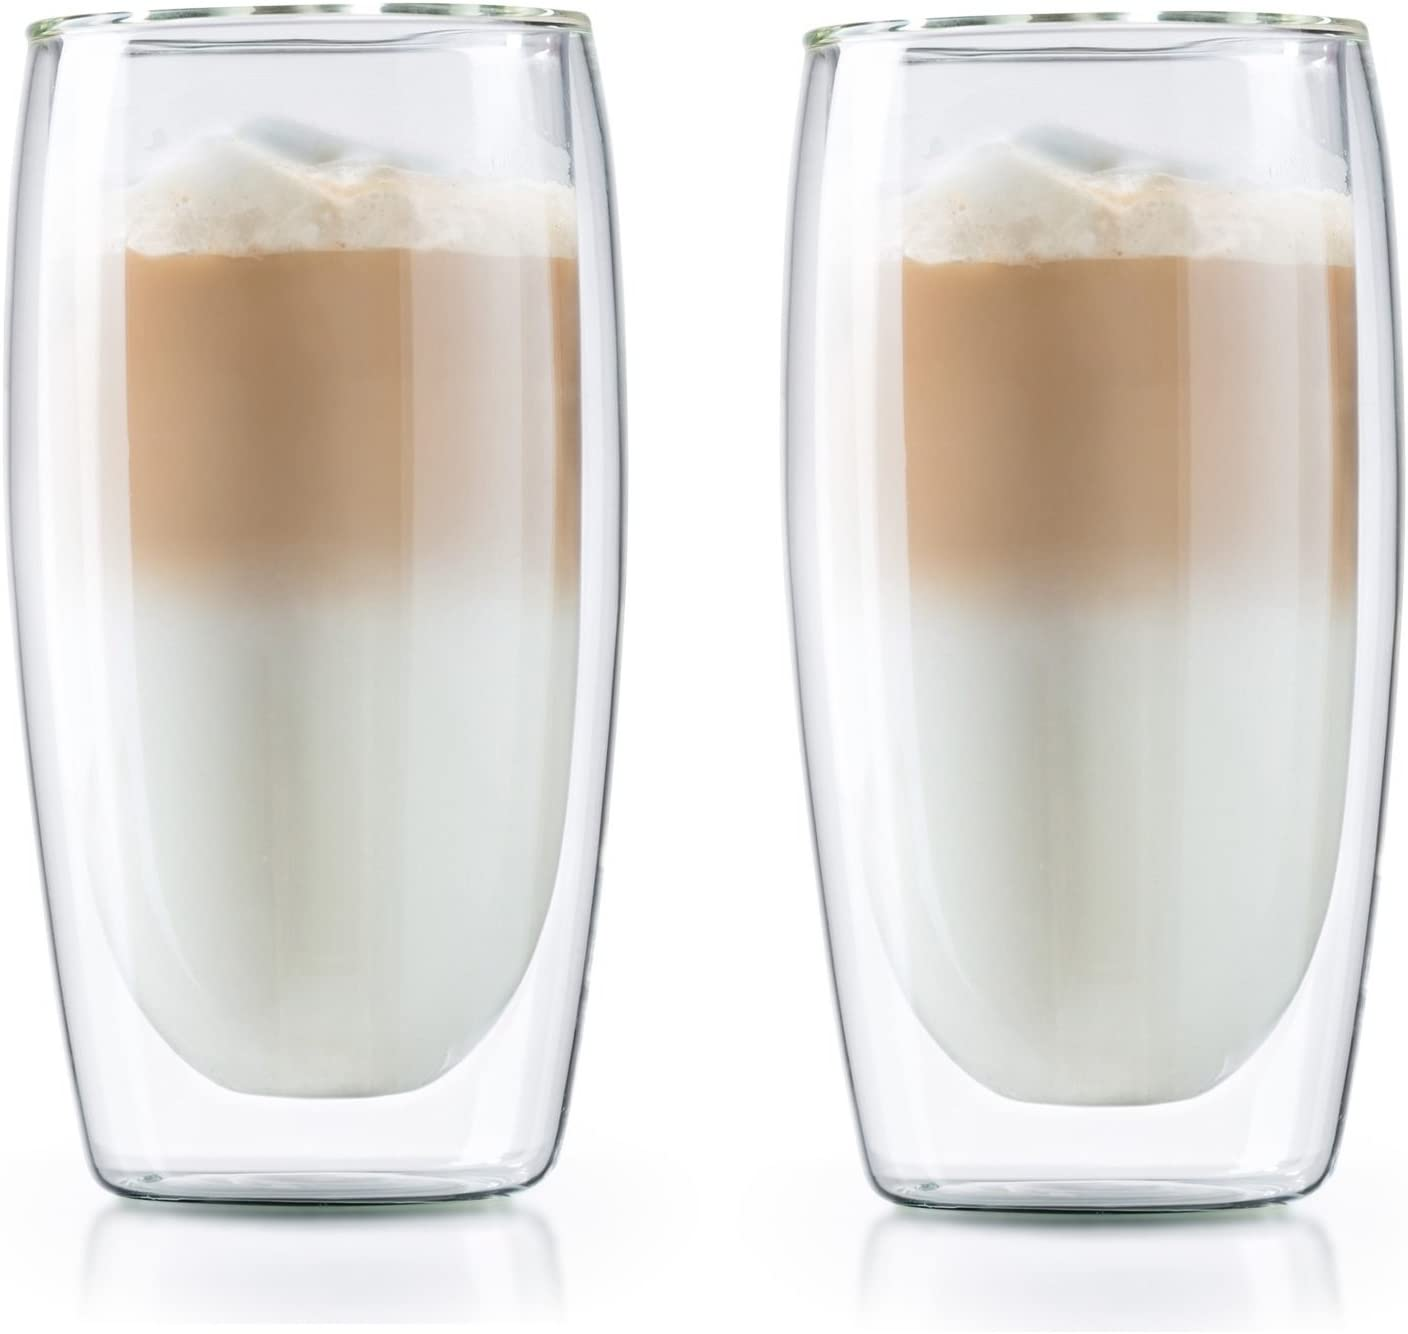 Double Wall Coffee Mug - Set of 2 Borosilicate Insulated Glass Coffee Glasses - Cool to Touch, No Condensation, Dishwasher Safe (12 oz)